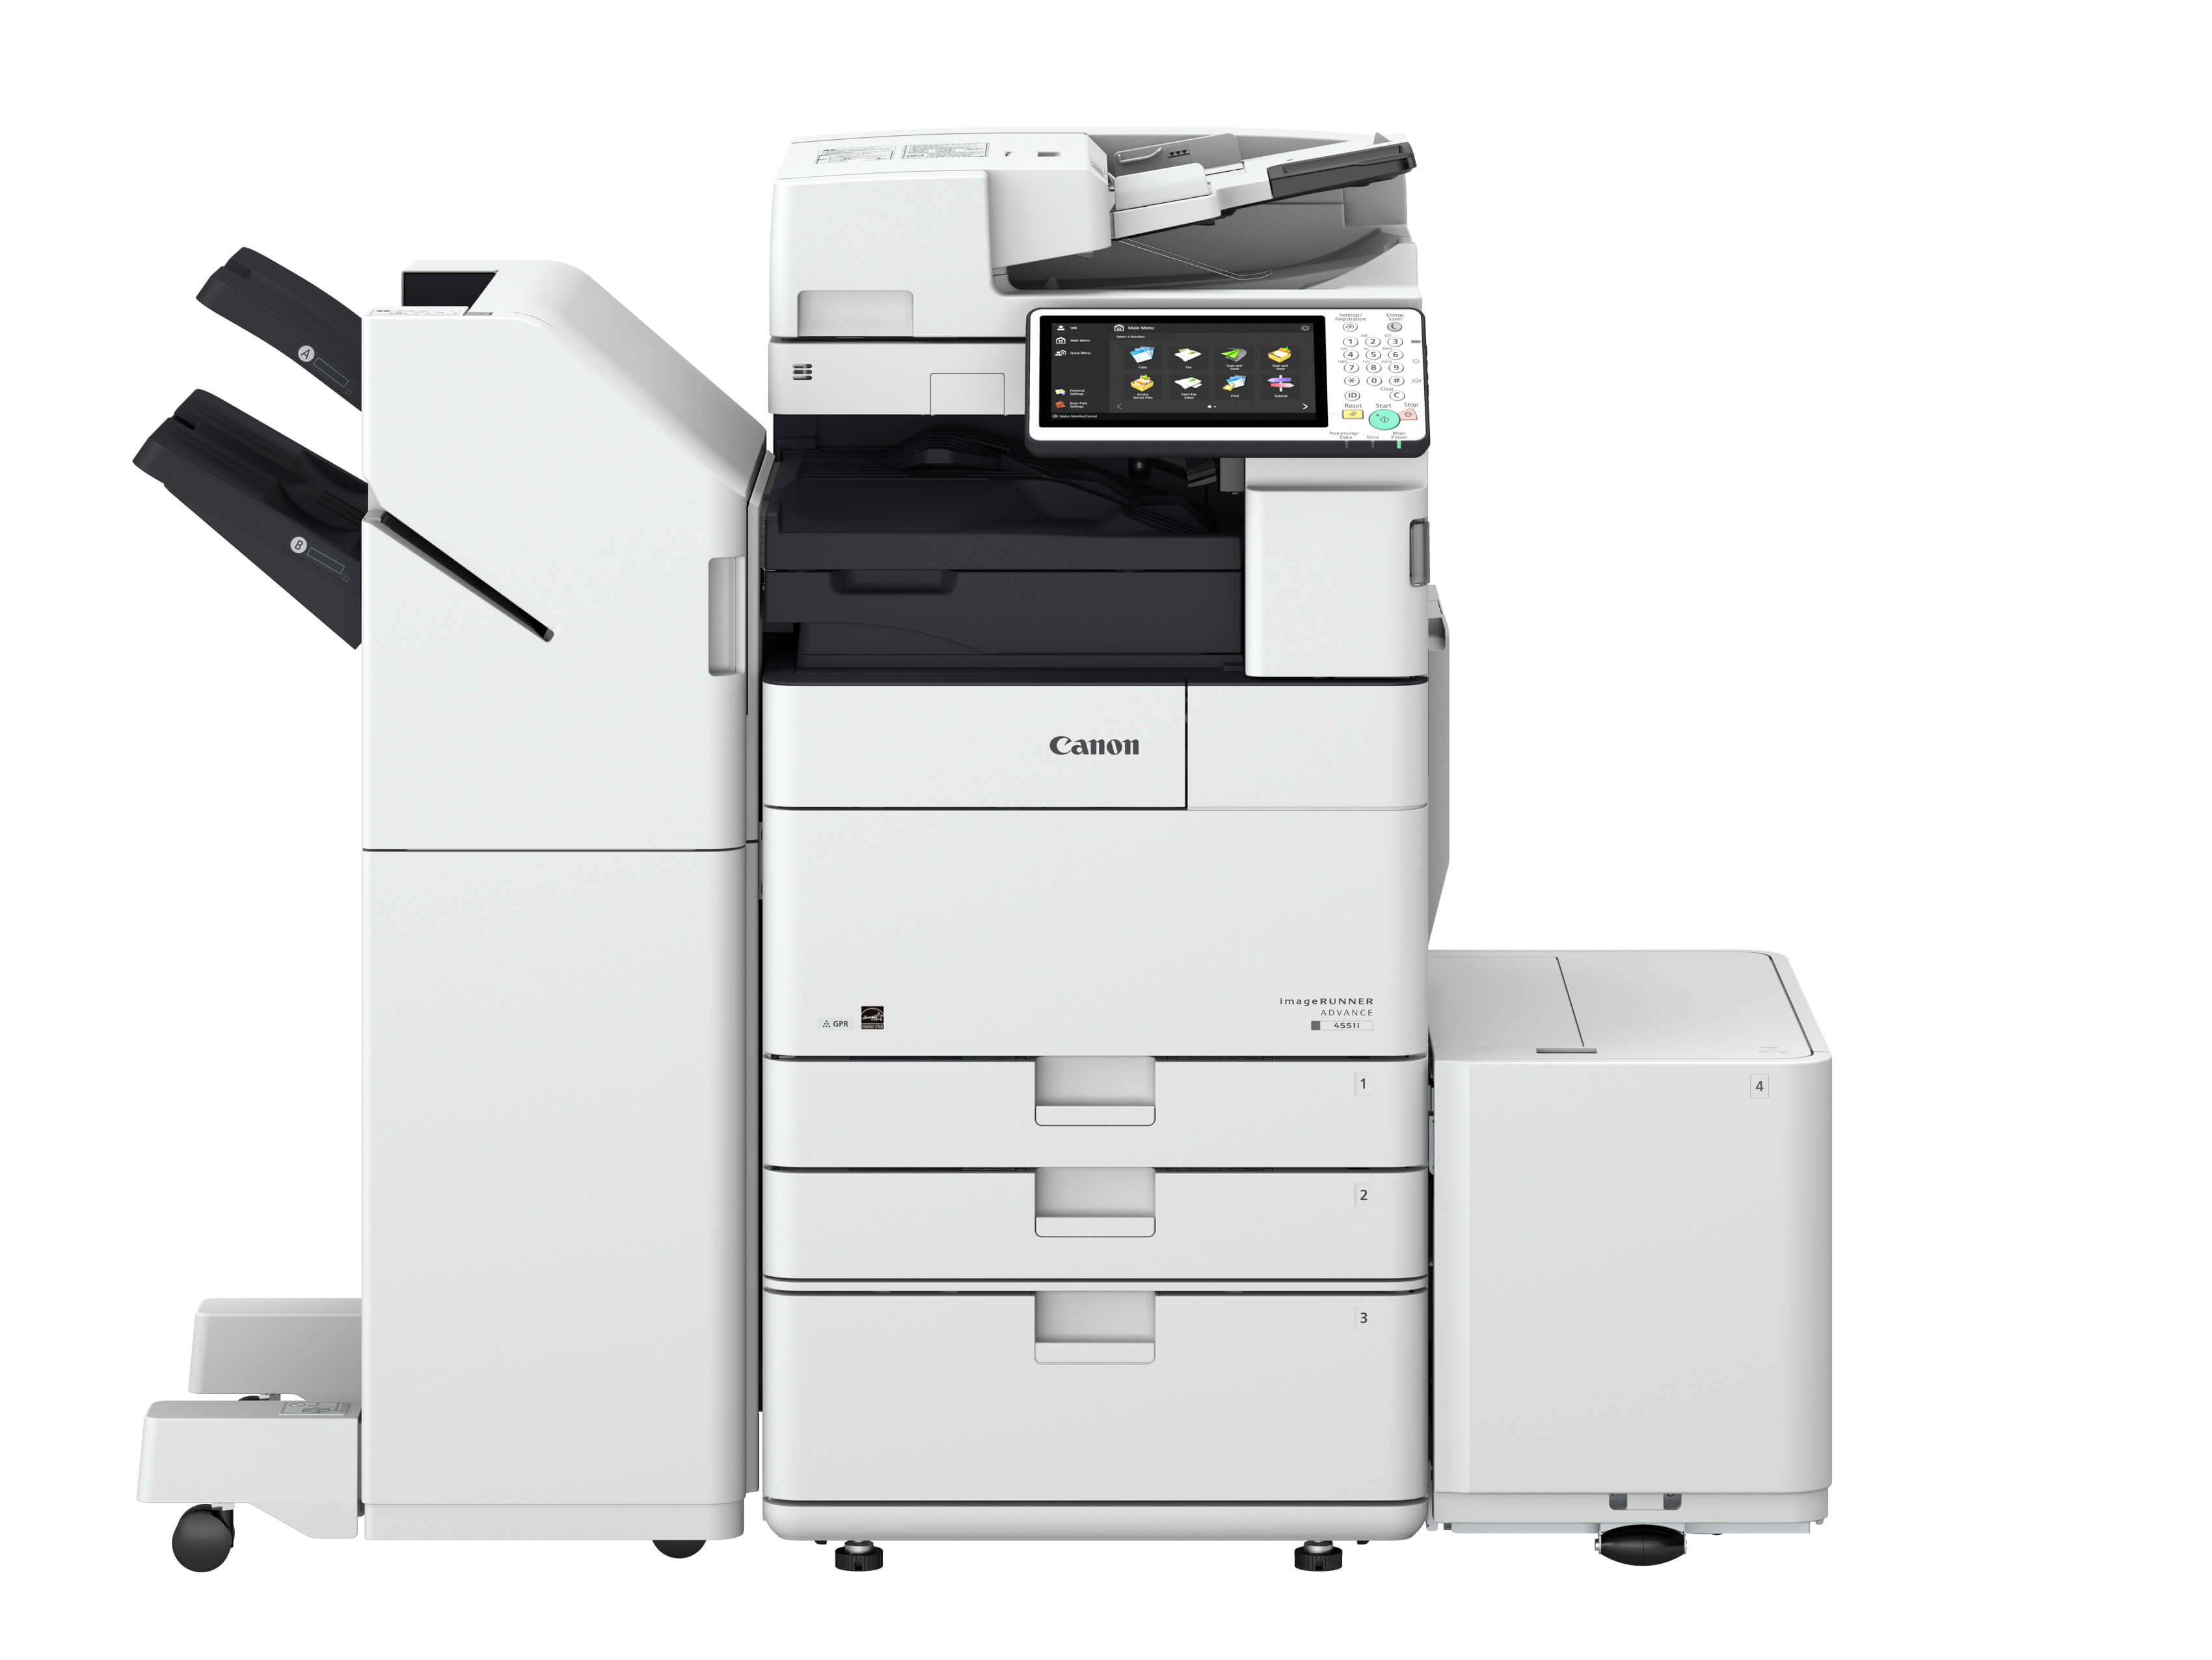 ImageRUNNER ADVANCE 4535i